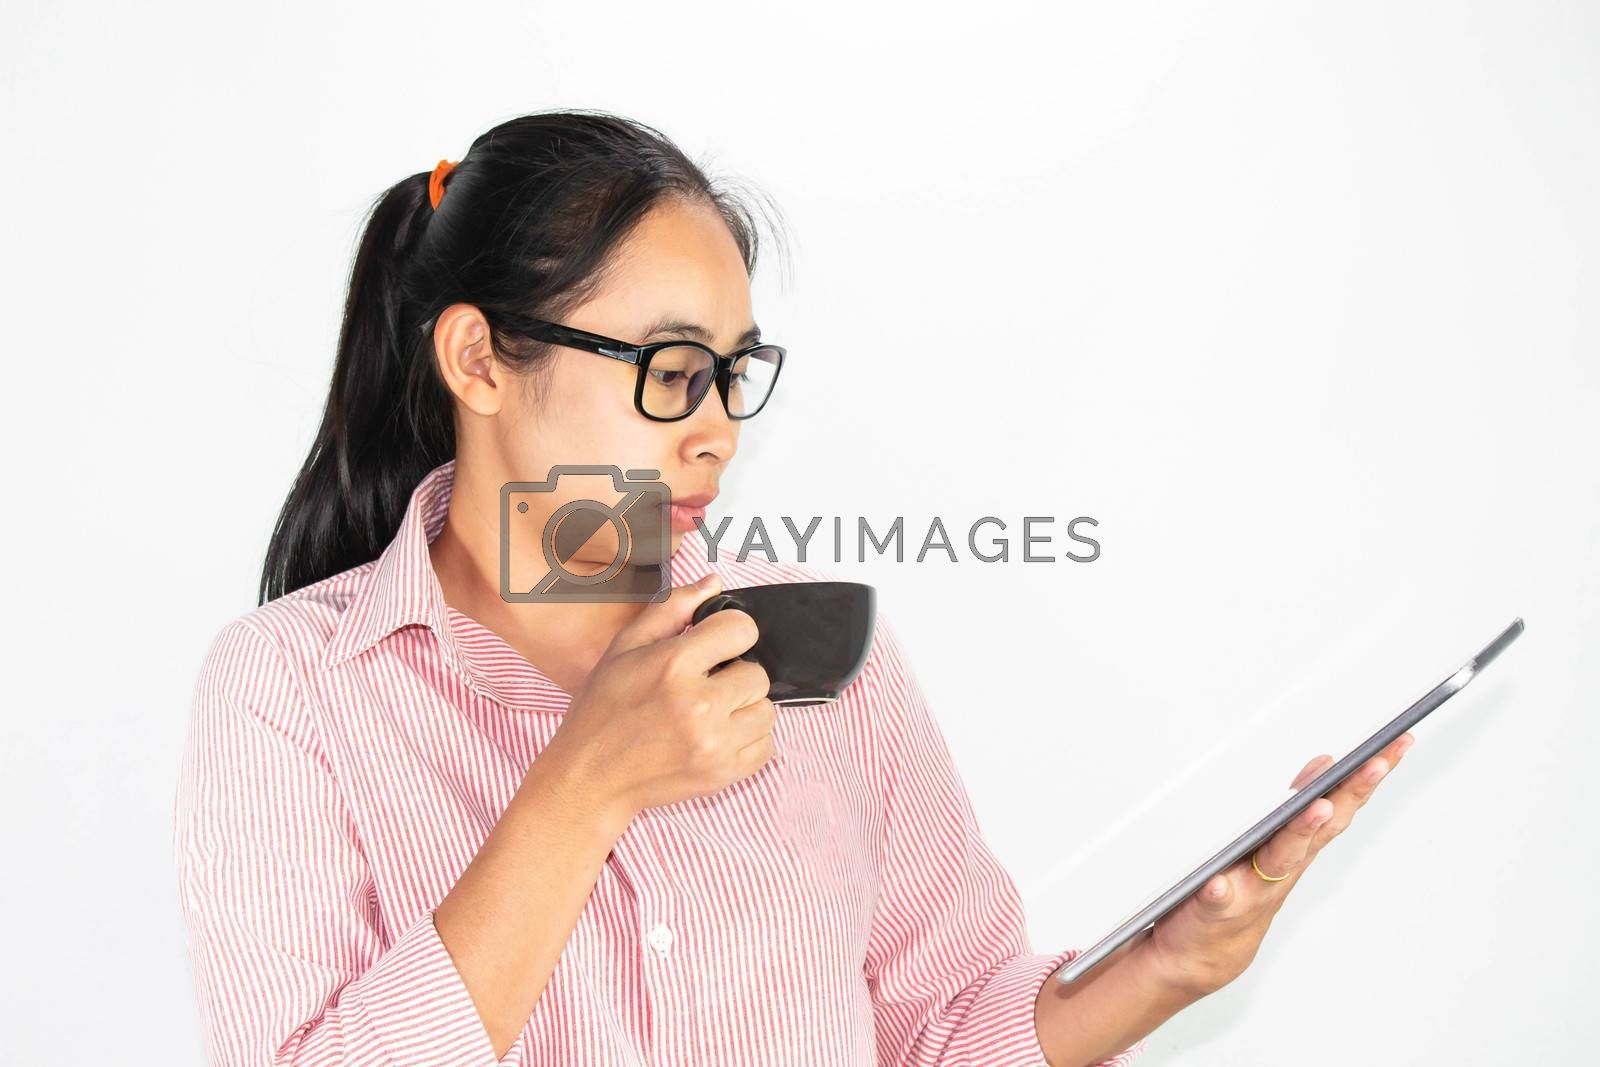 Close up portrait of confident Asian woman, wearing glasses and holding coffee cup, looking tablet with looking seriously face, standing over white background with copy space. by TEERASAK